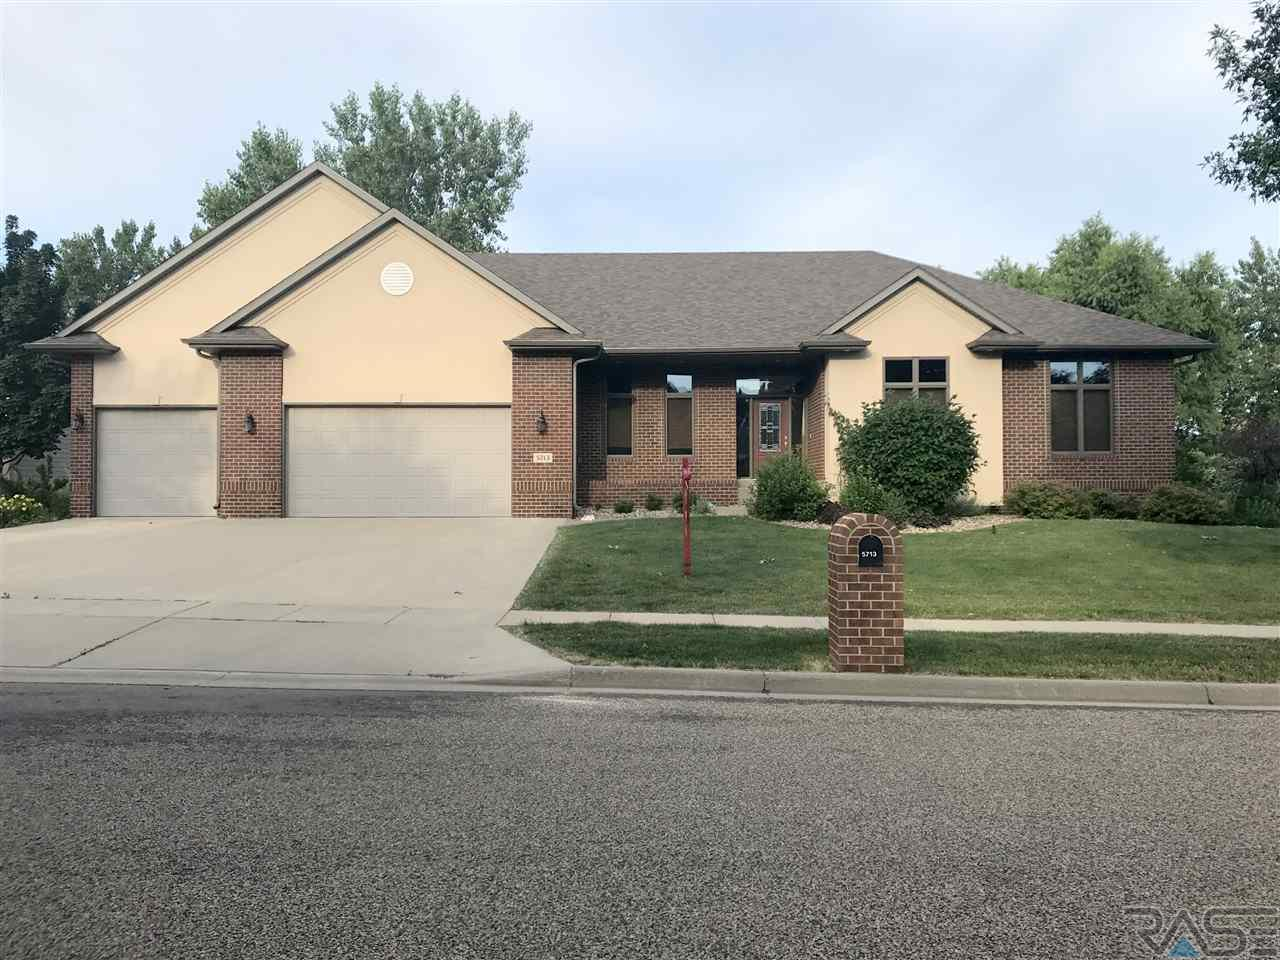 5713 S Frontier Trl, Sioux Falls, SD 57108